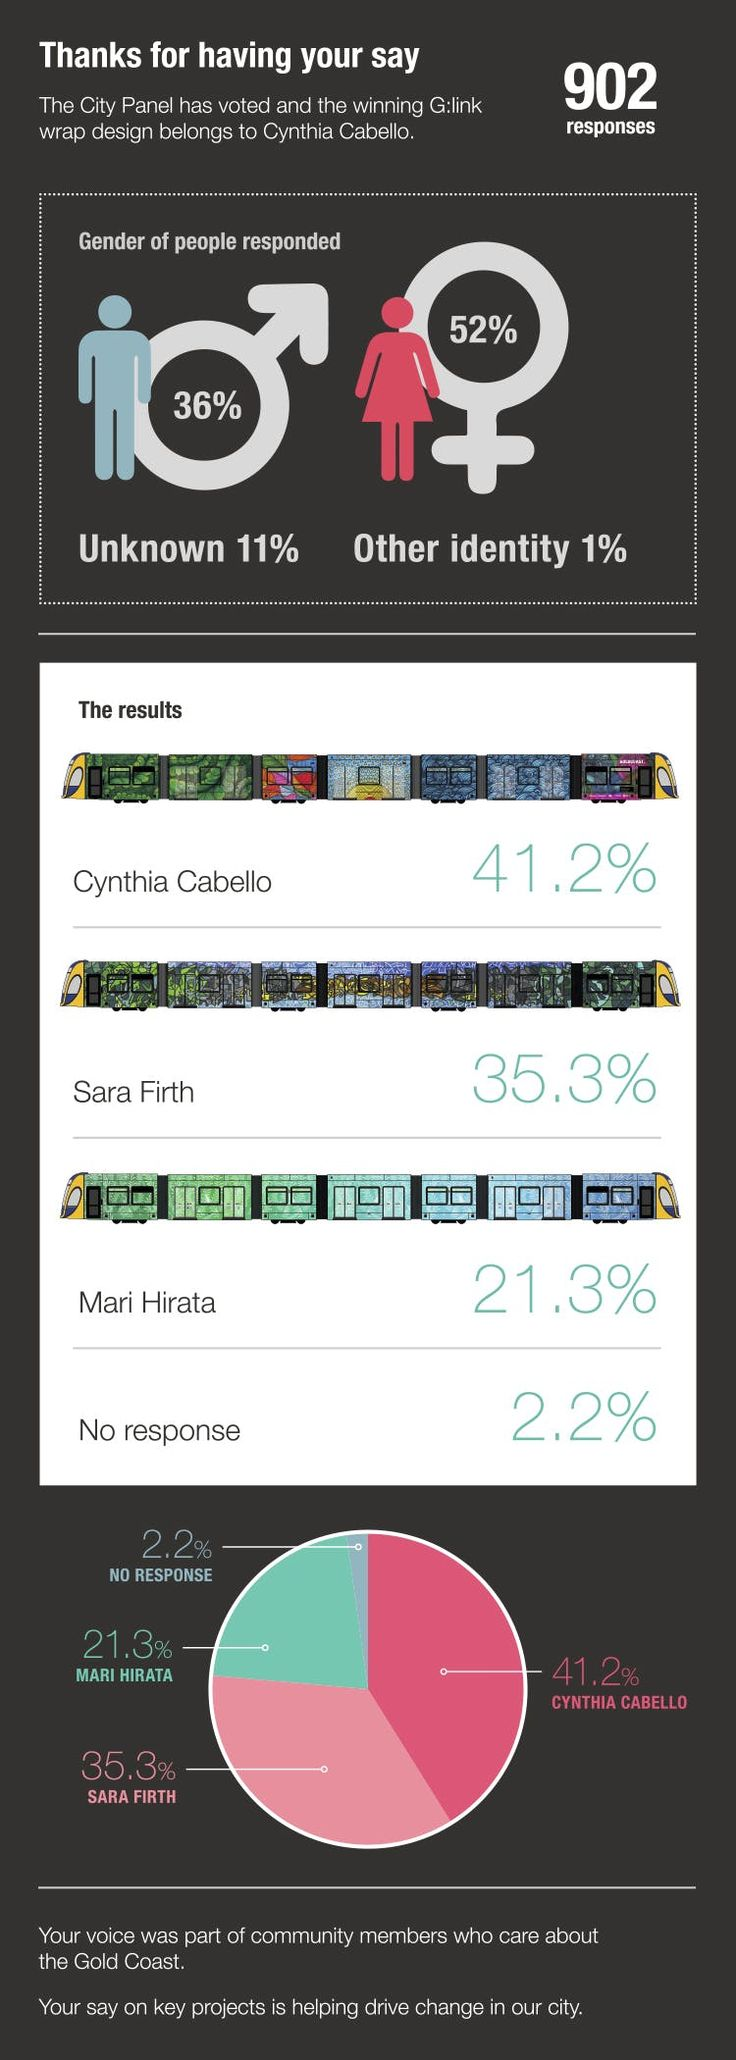 G:link wrap commission engagement results infographic